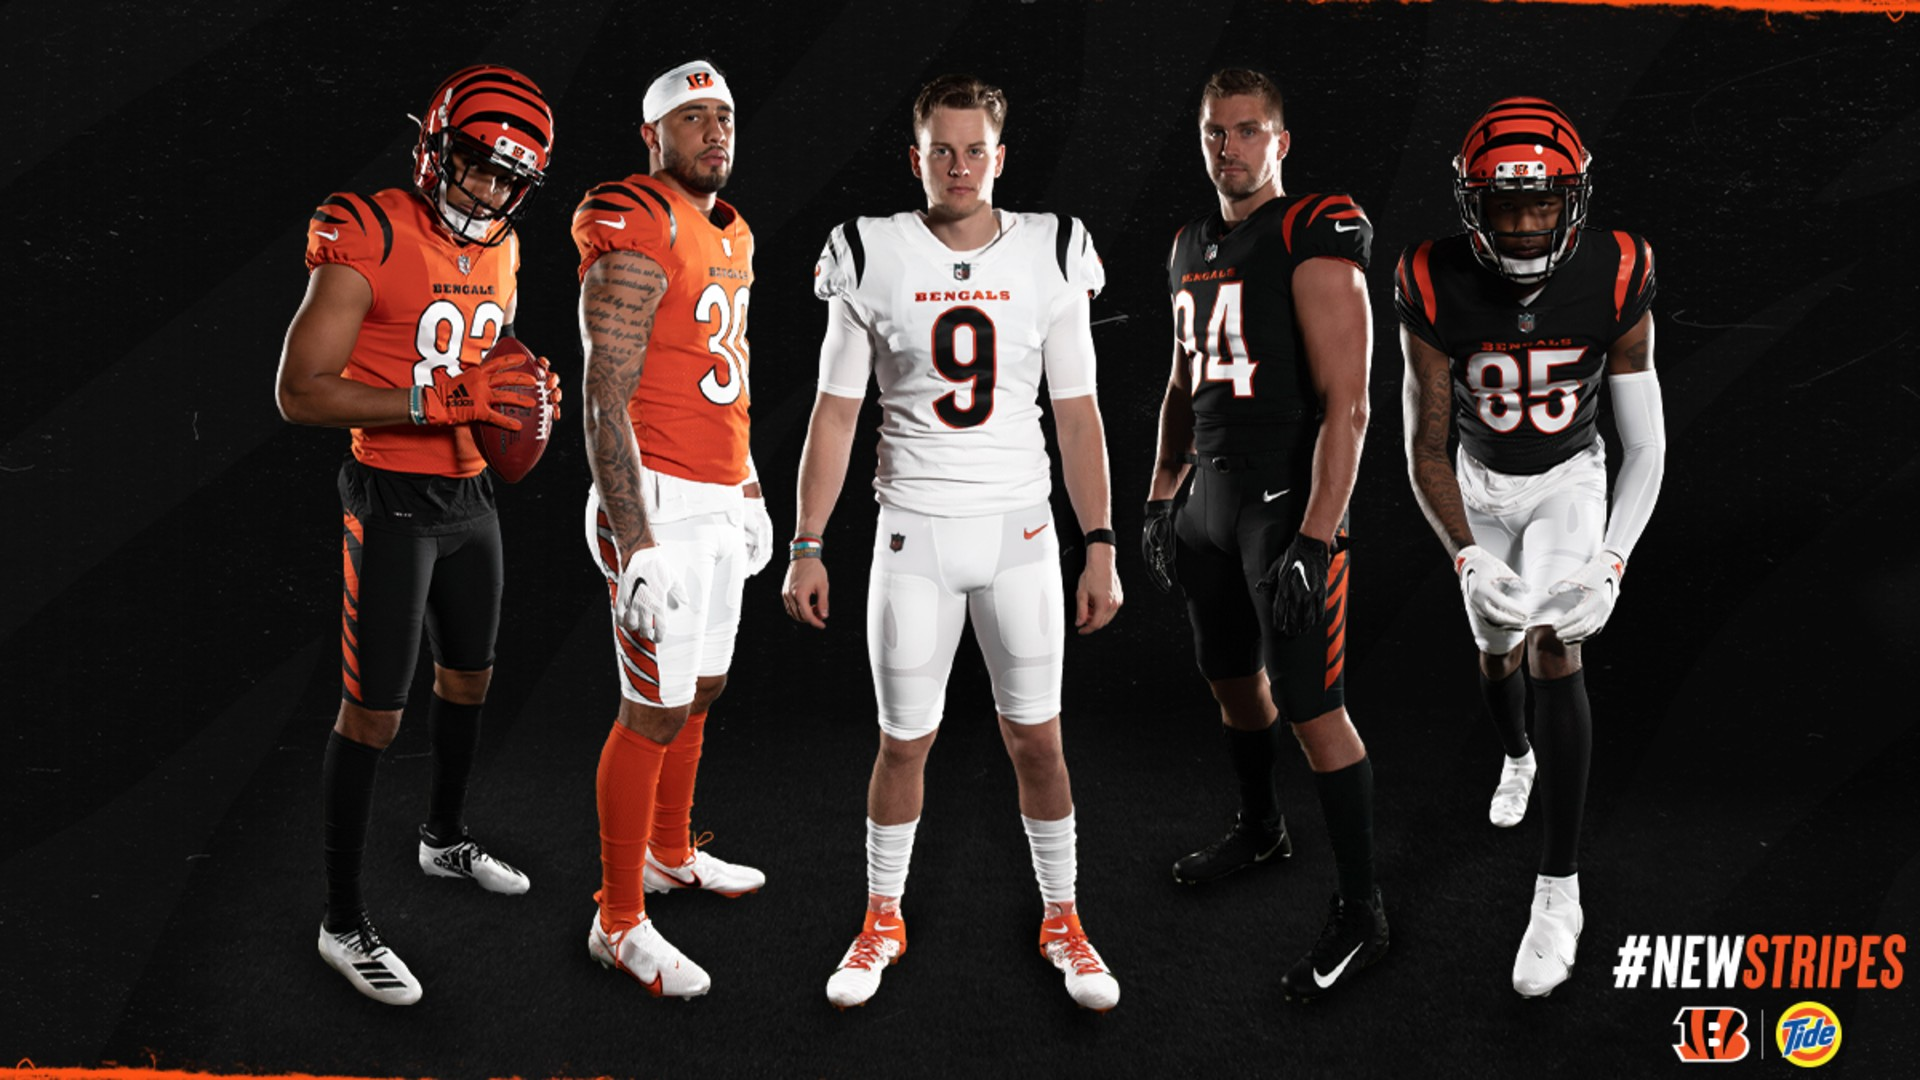 Where do new Bengals uniforms rank among Nike NFL redesigns as of 2021?